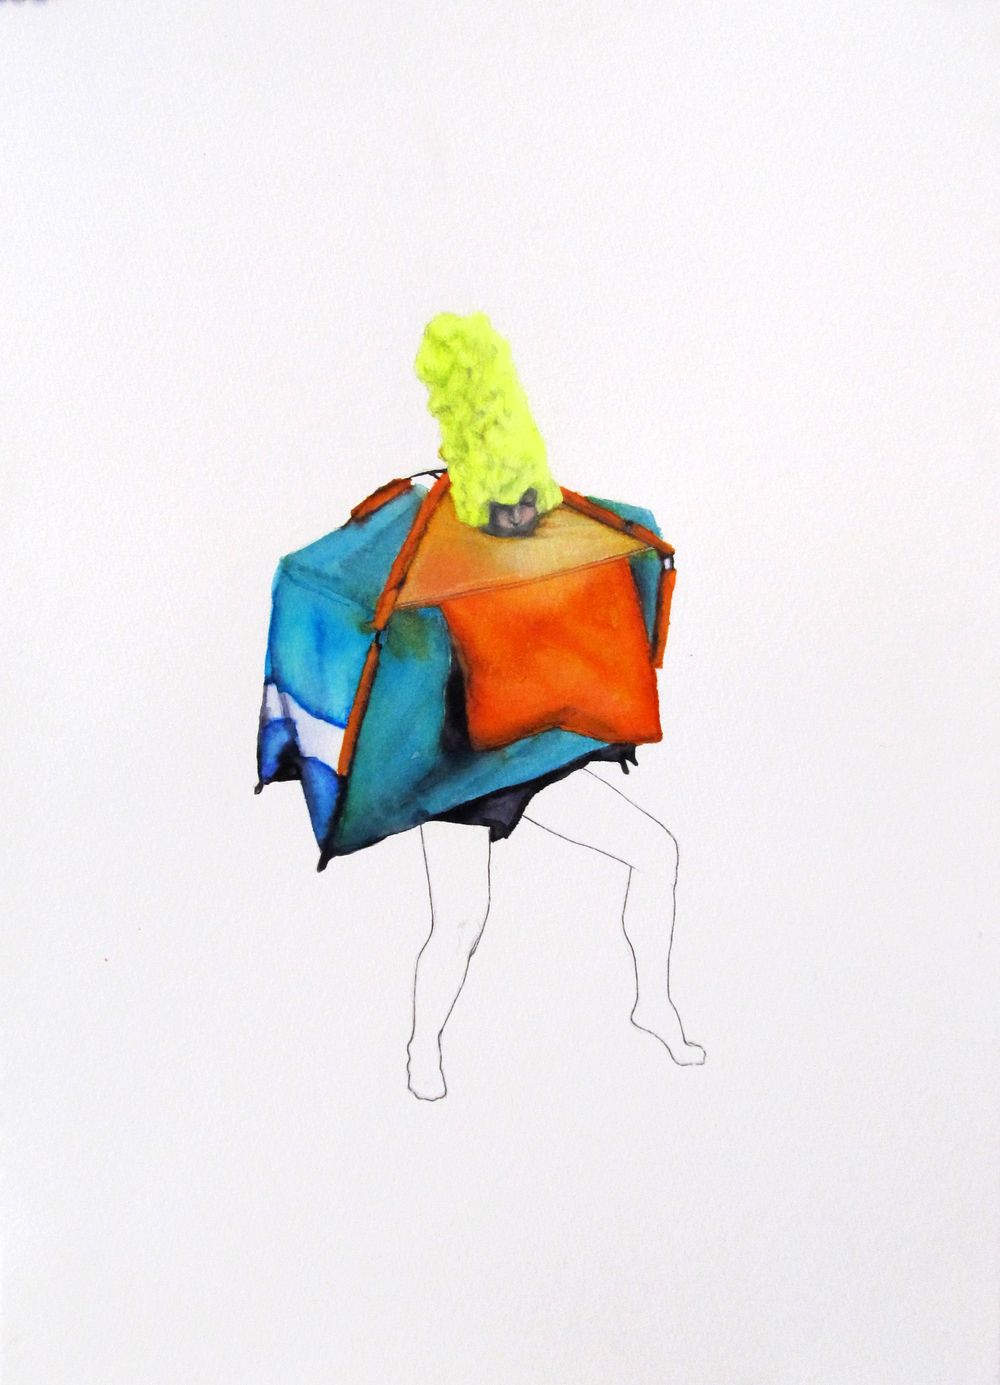 The Tent Lady (she's an insect in the world) / 24 x 34 cm / Colored pencil & ink on paper SOLD